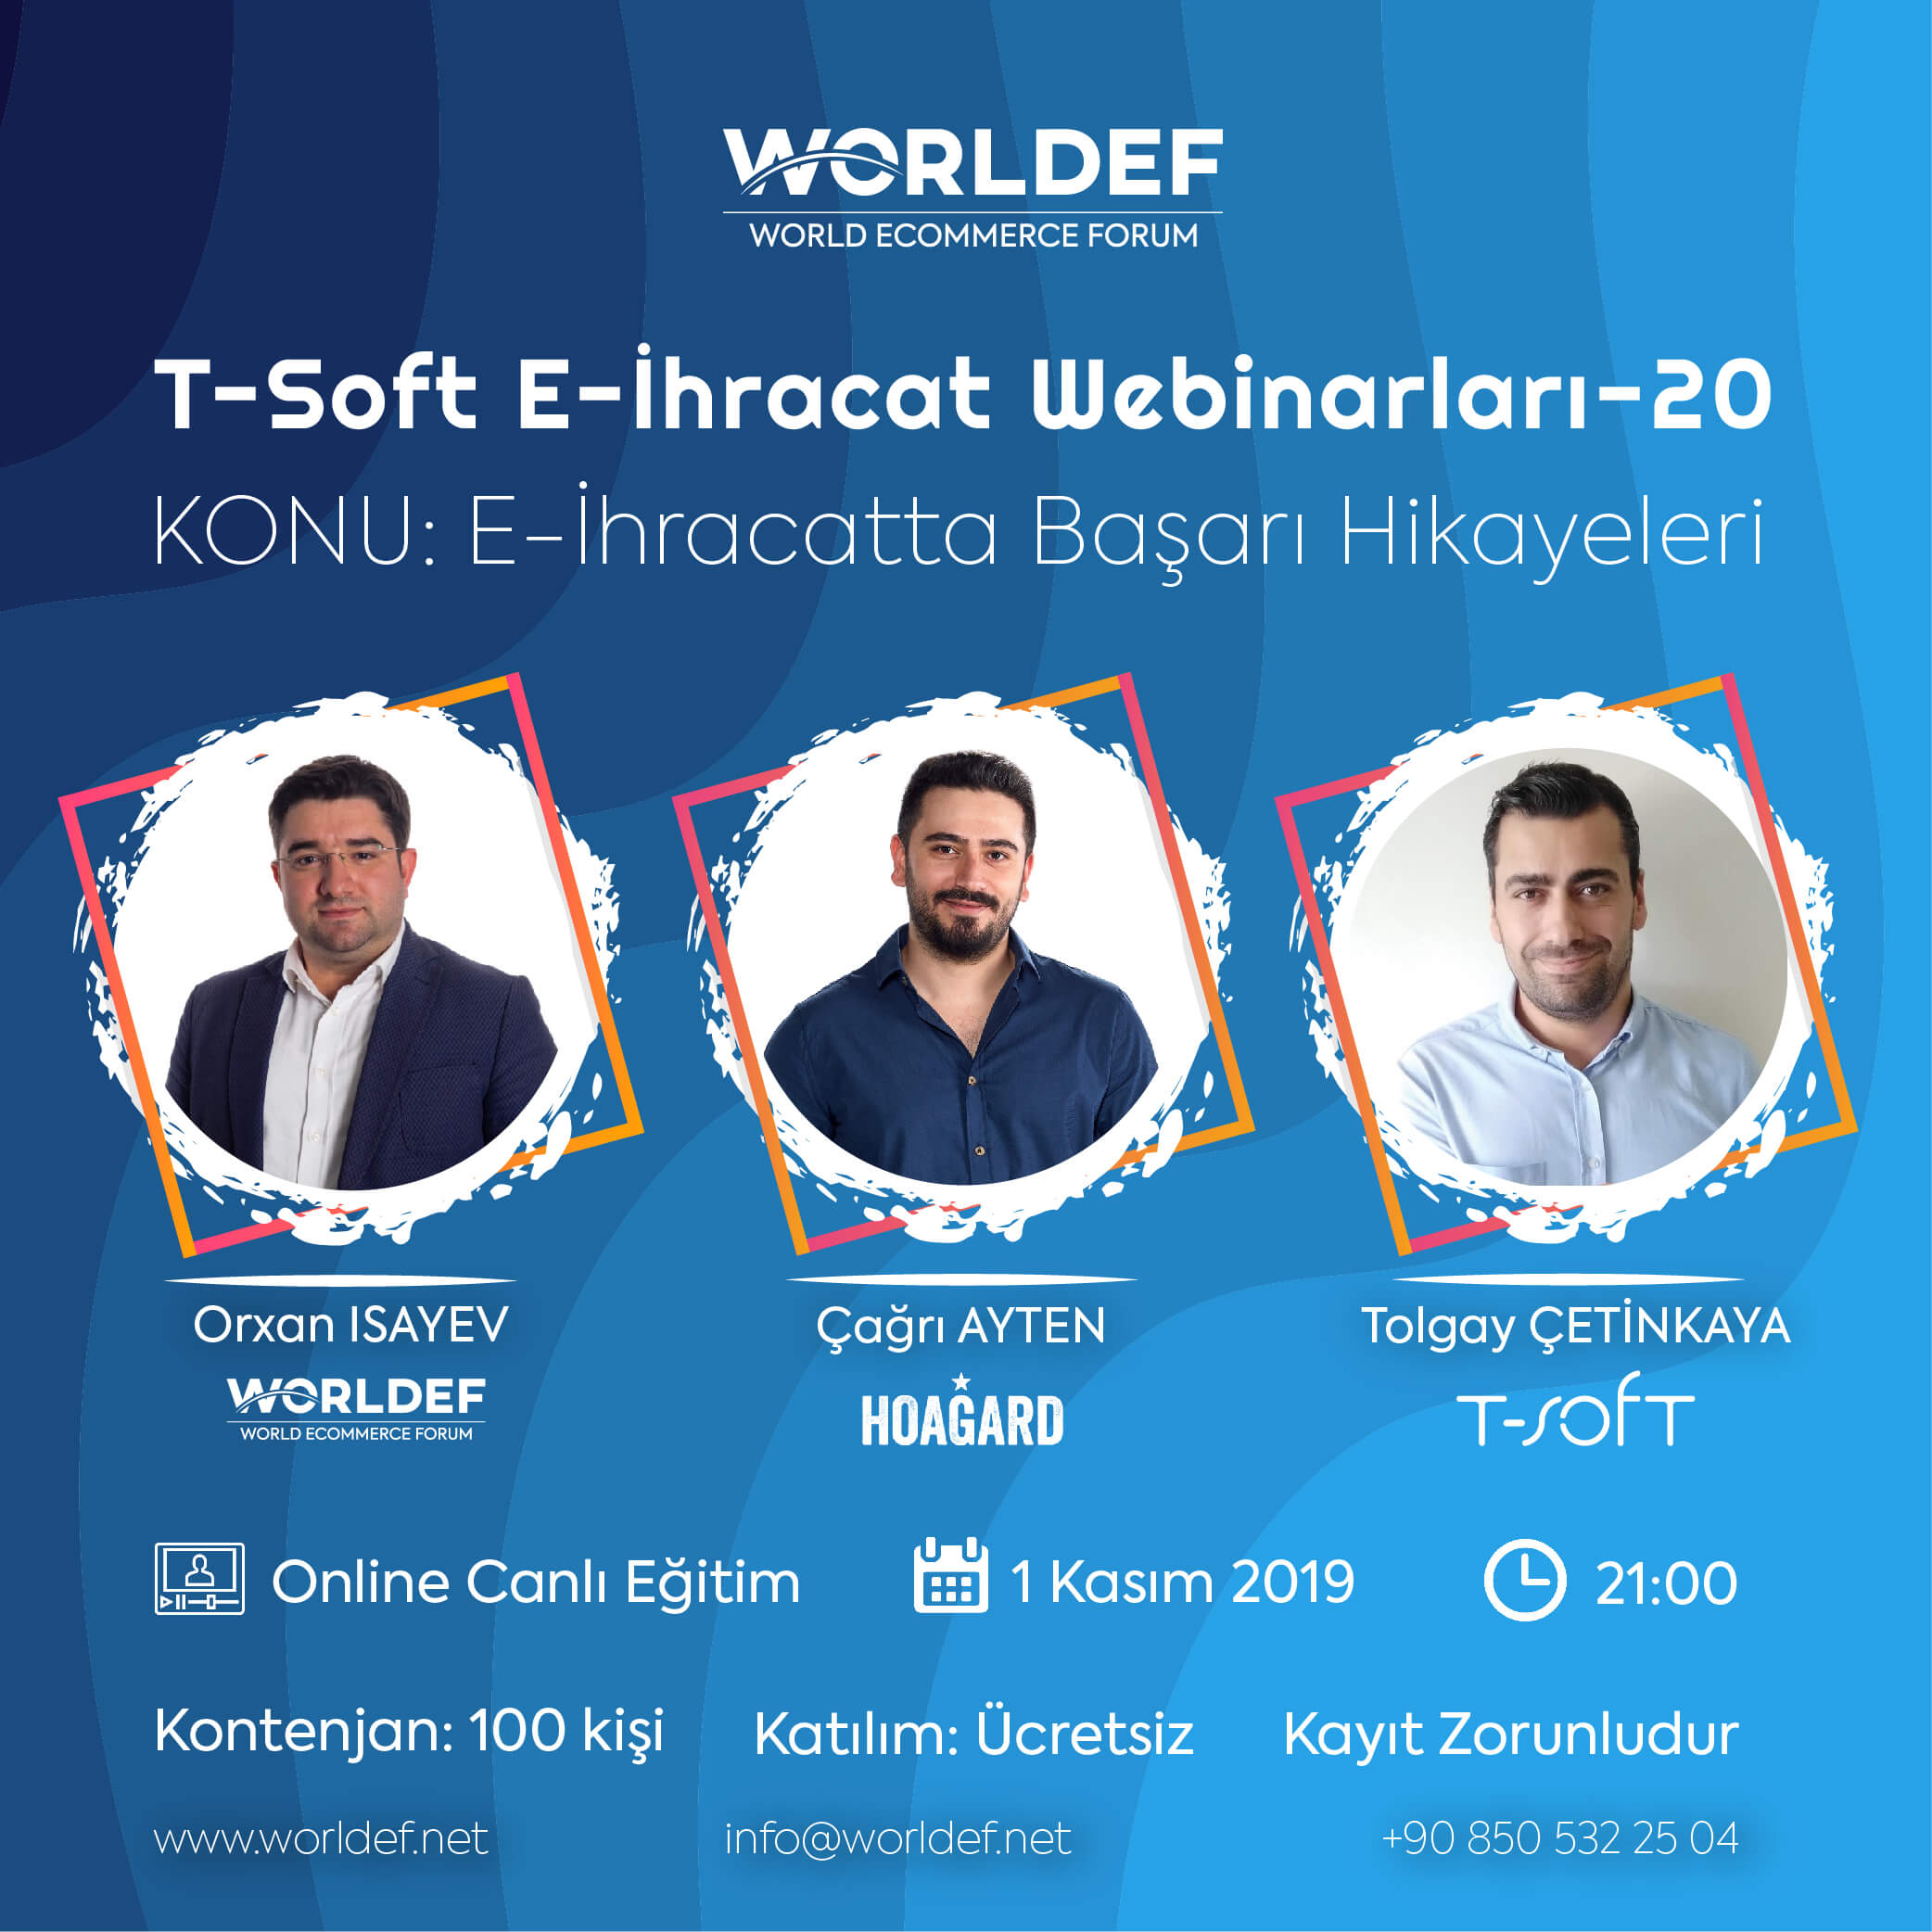 In the series of cross-border e-commerce webinars, Çağrı Ayten, one of the founding partners of Hoagard, will tell about this unique brand that emerged by cross-border e-commerce!